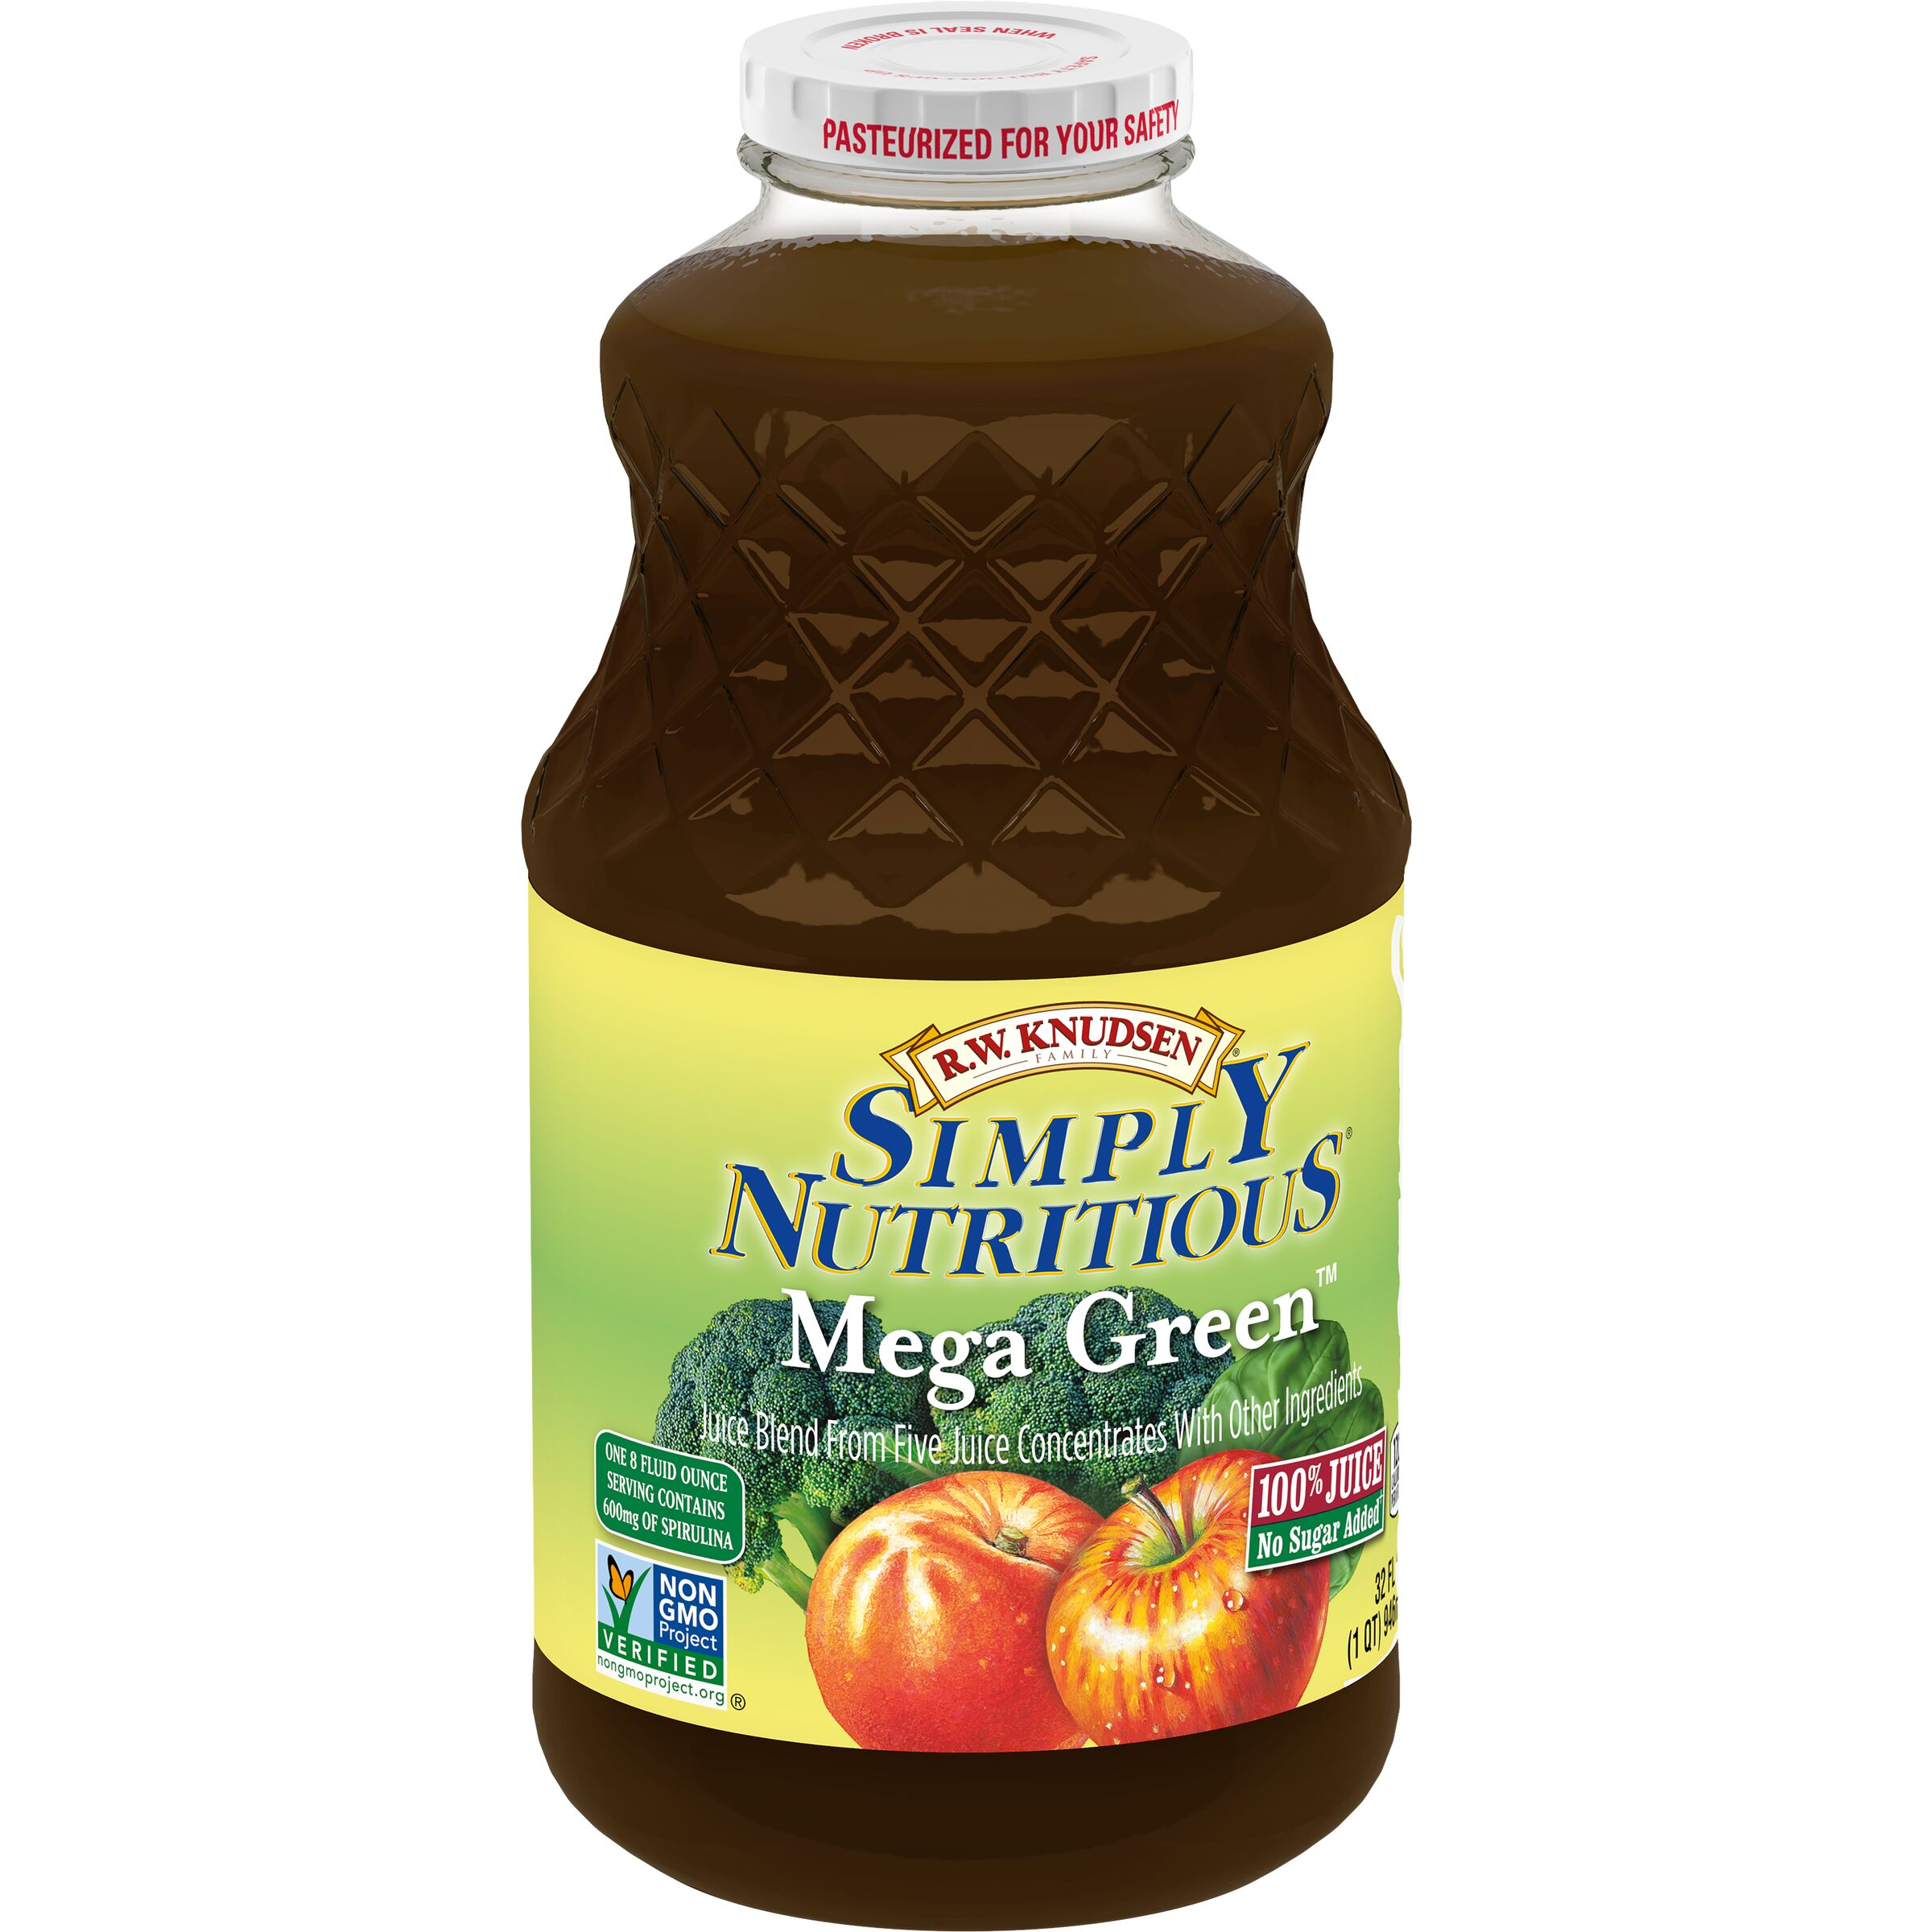 R.W. Knudsen Family Simply Nutritious Mega Green Juice Blend